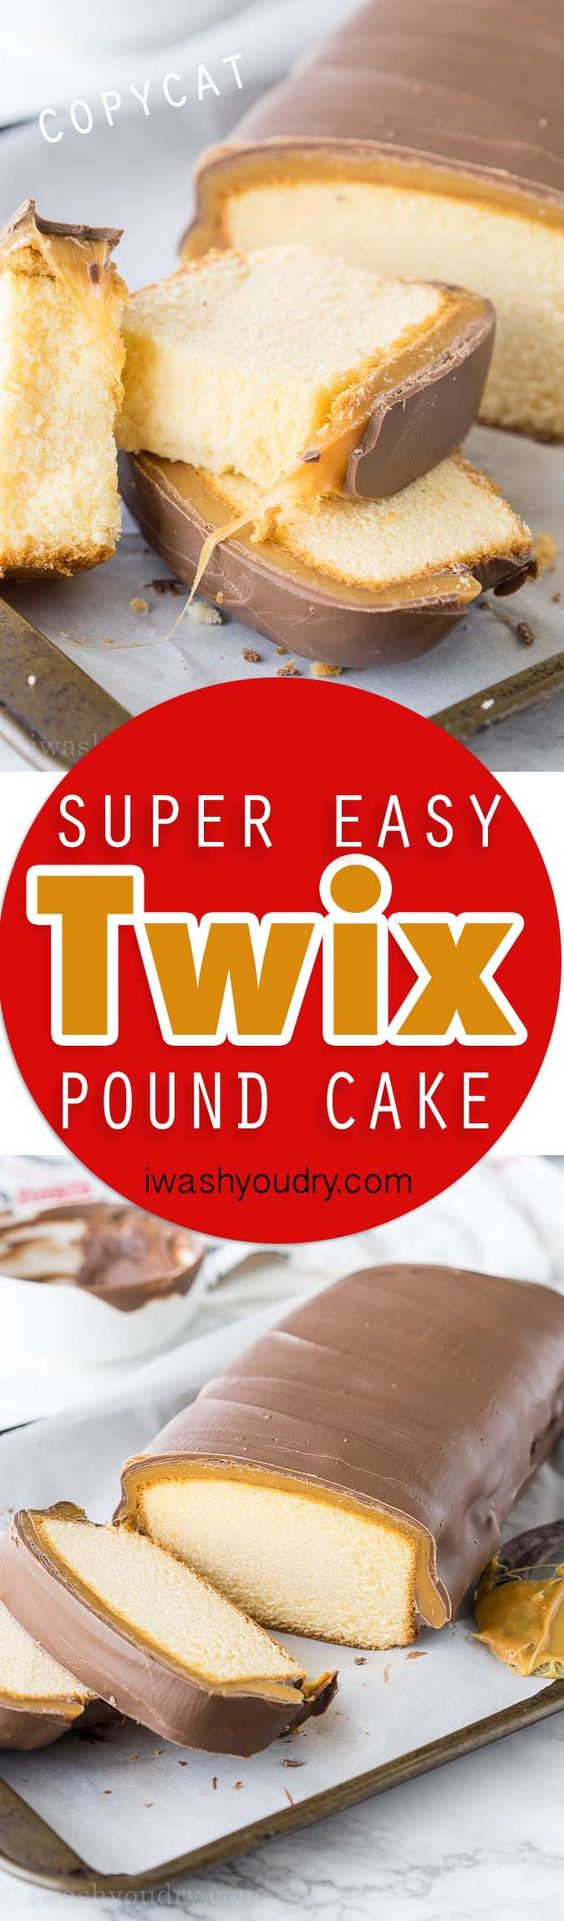 This super easy Twix Pound Cake is a quick dessert that only takes 4 ingredients! No Baking...use a frozen Sara Lee Pound Cake!